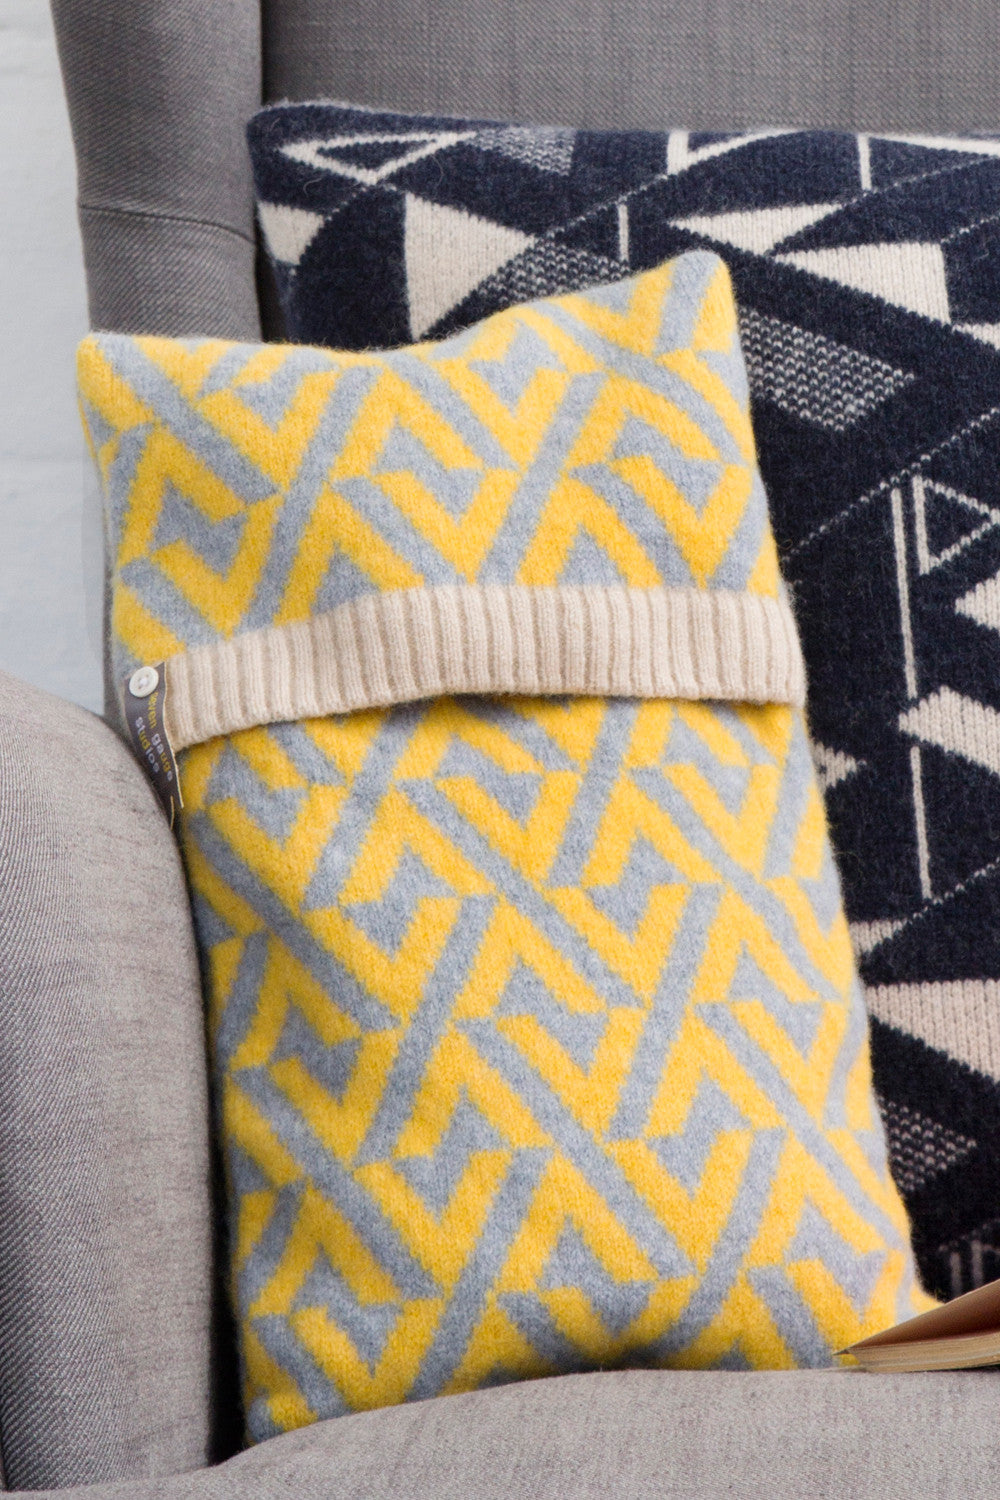 Geo lambswool knitted hot water bottle in yellow and grey